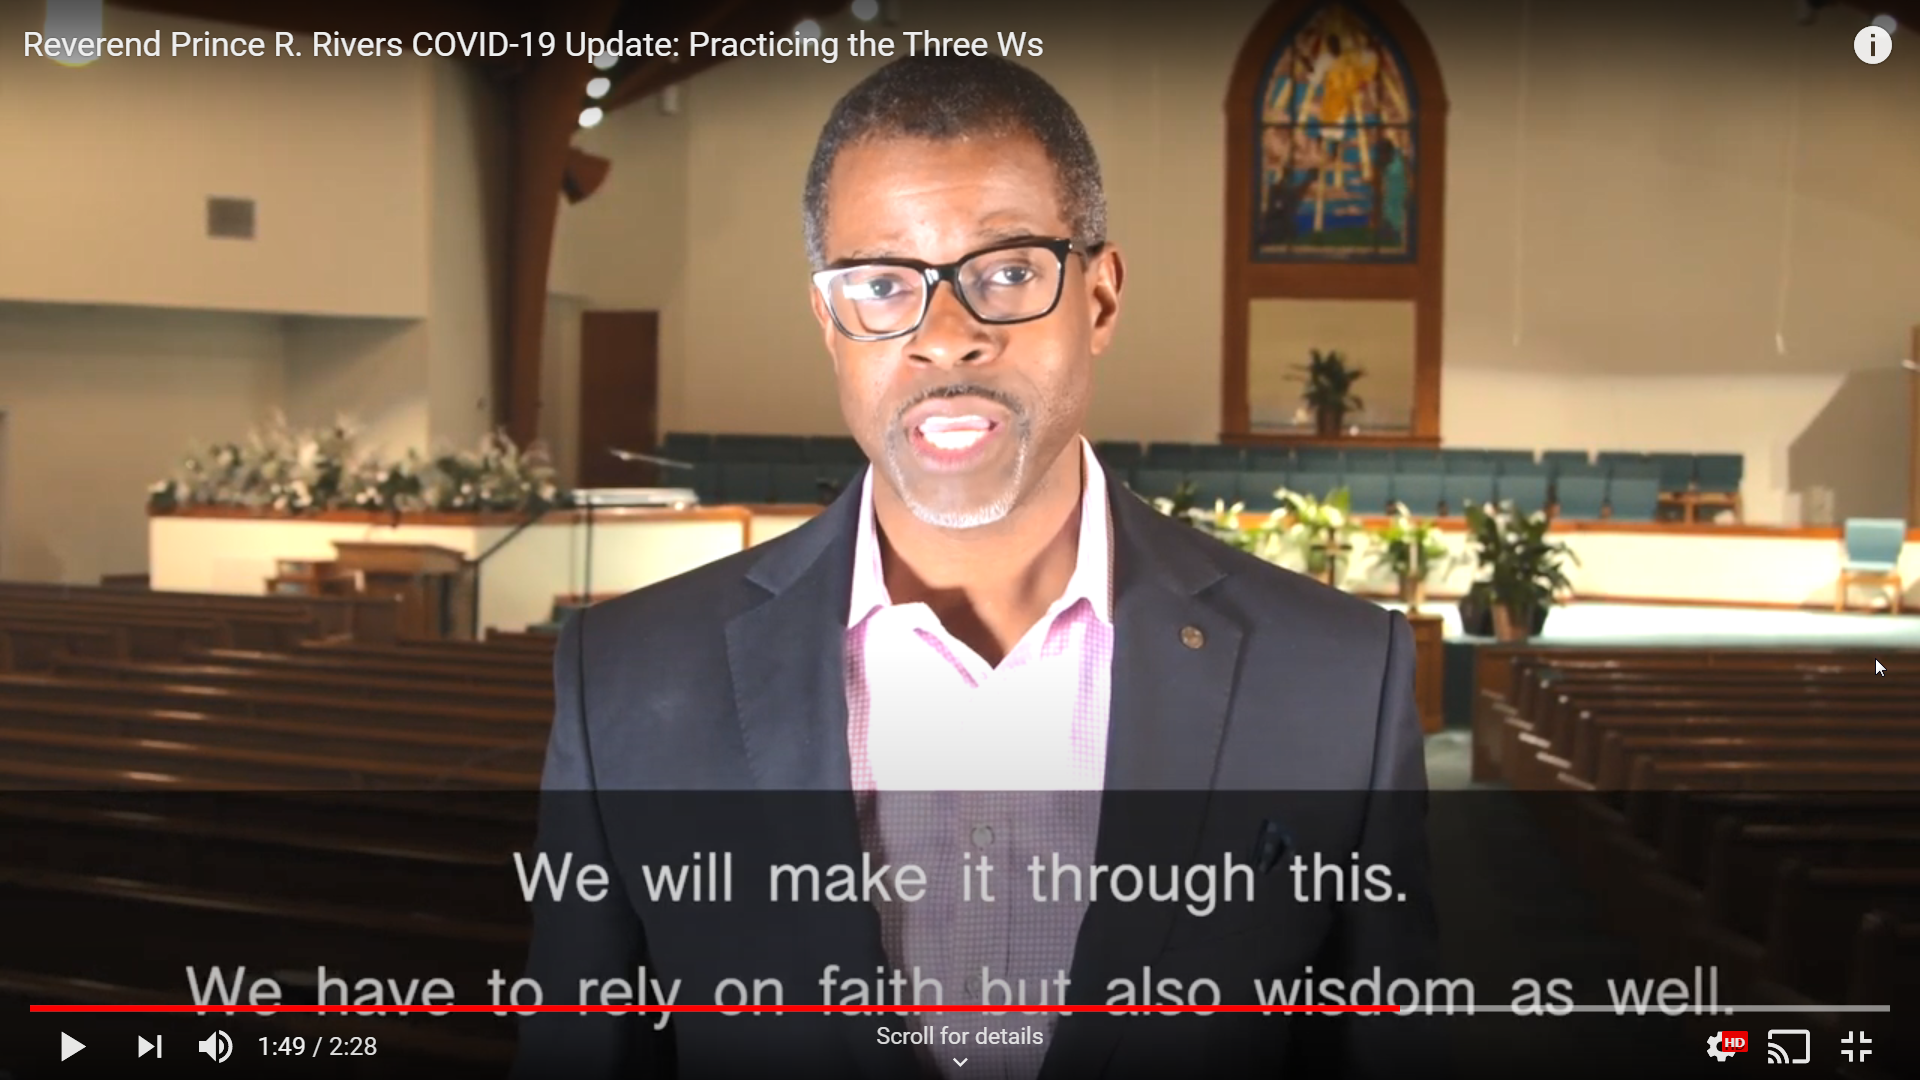 Reverend Prince R. Rivers Video